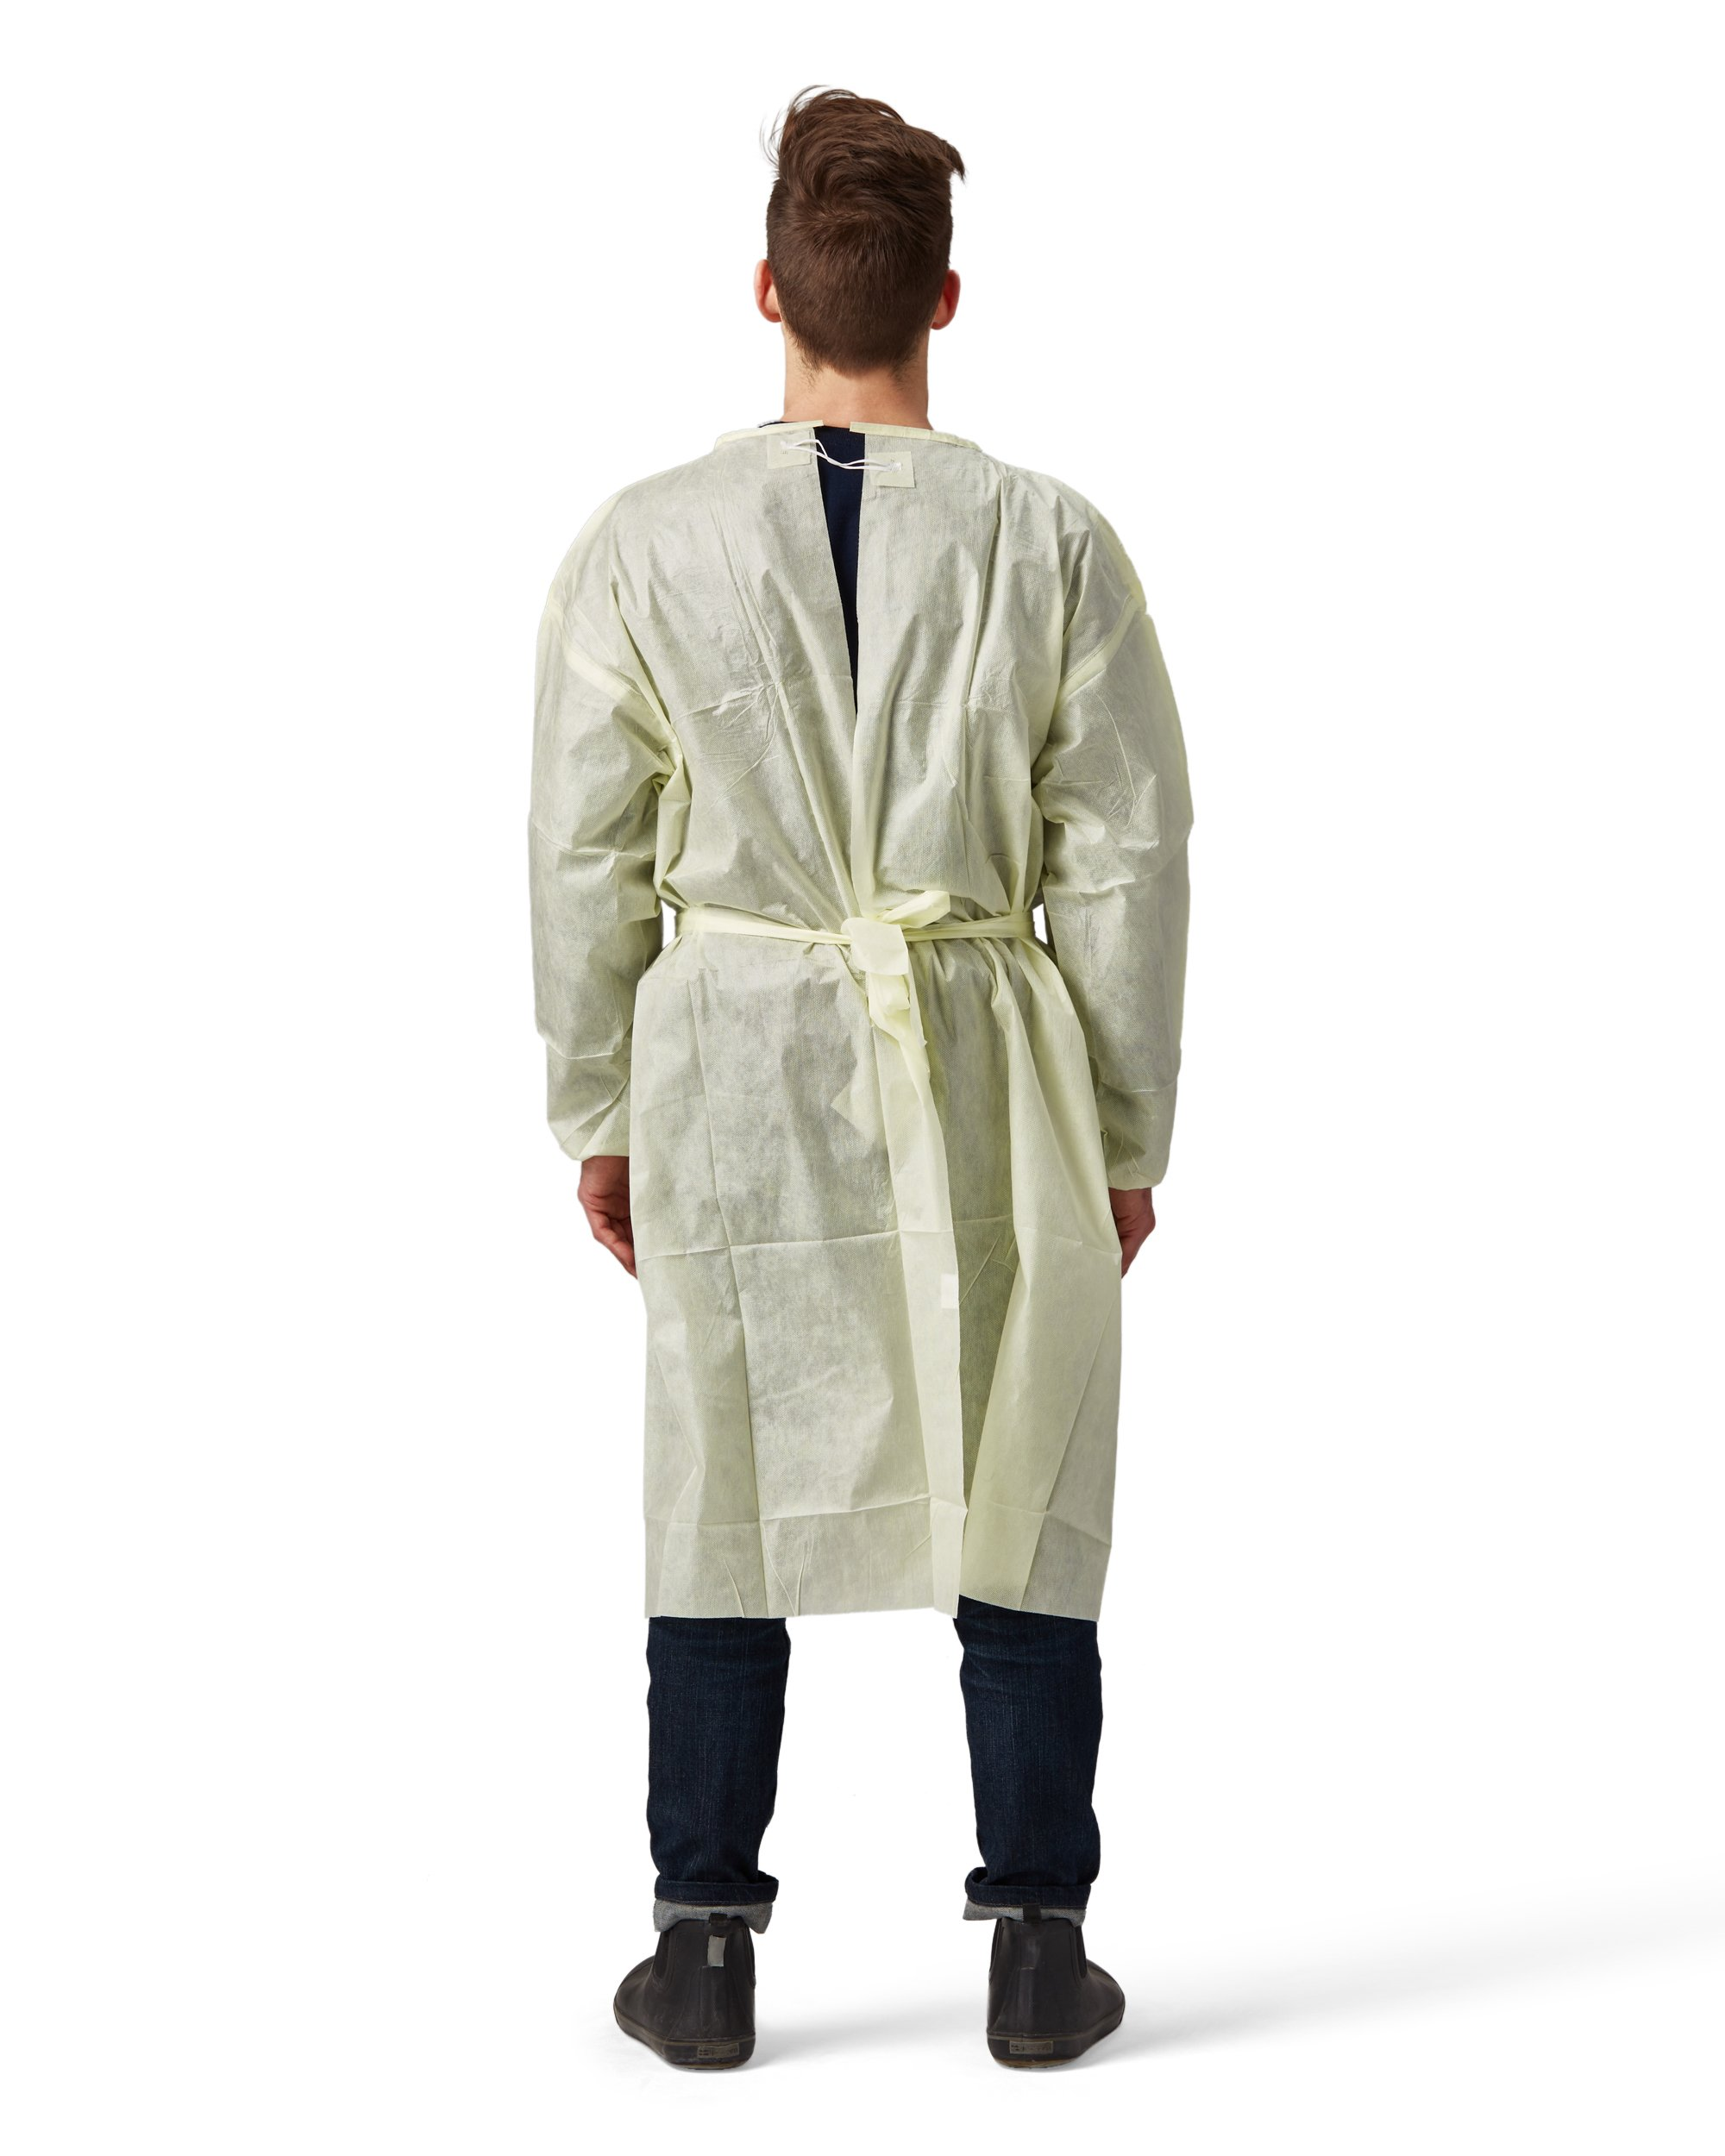 Disposable SMS Polypropylene Isolation Gown, with Elastic cuffs, Breathable, flexible, and fluid resistant. Professional Surgical gowns & Lab Coats. (10 Units, Regular) by AMD Ritmed® (Image #2)